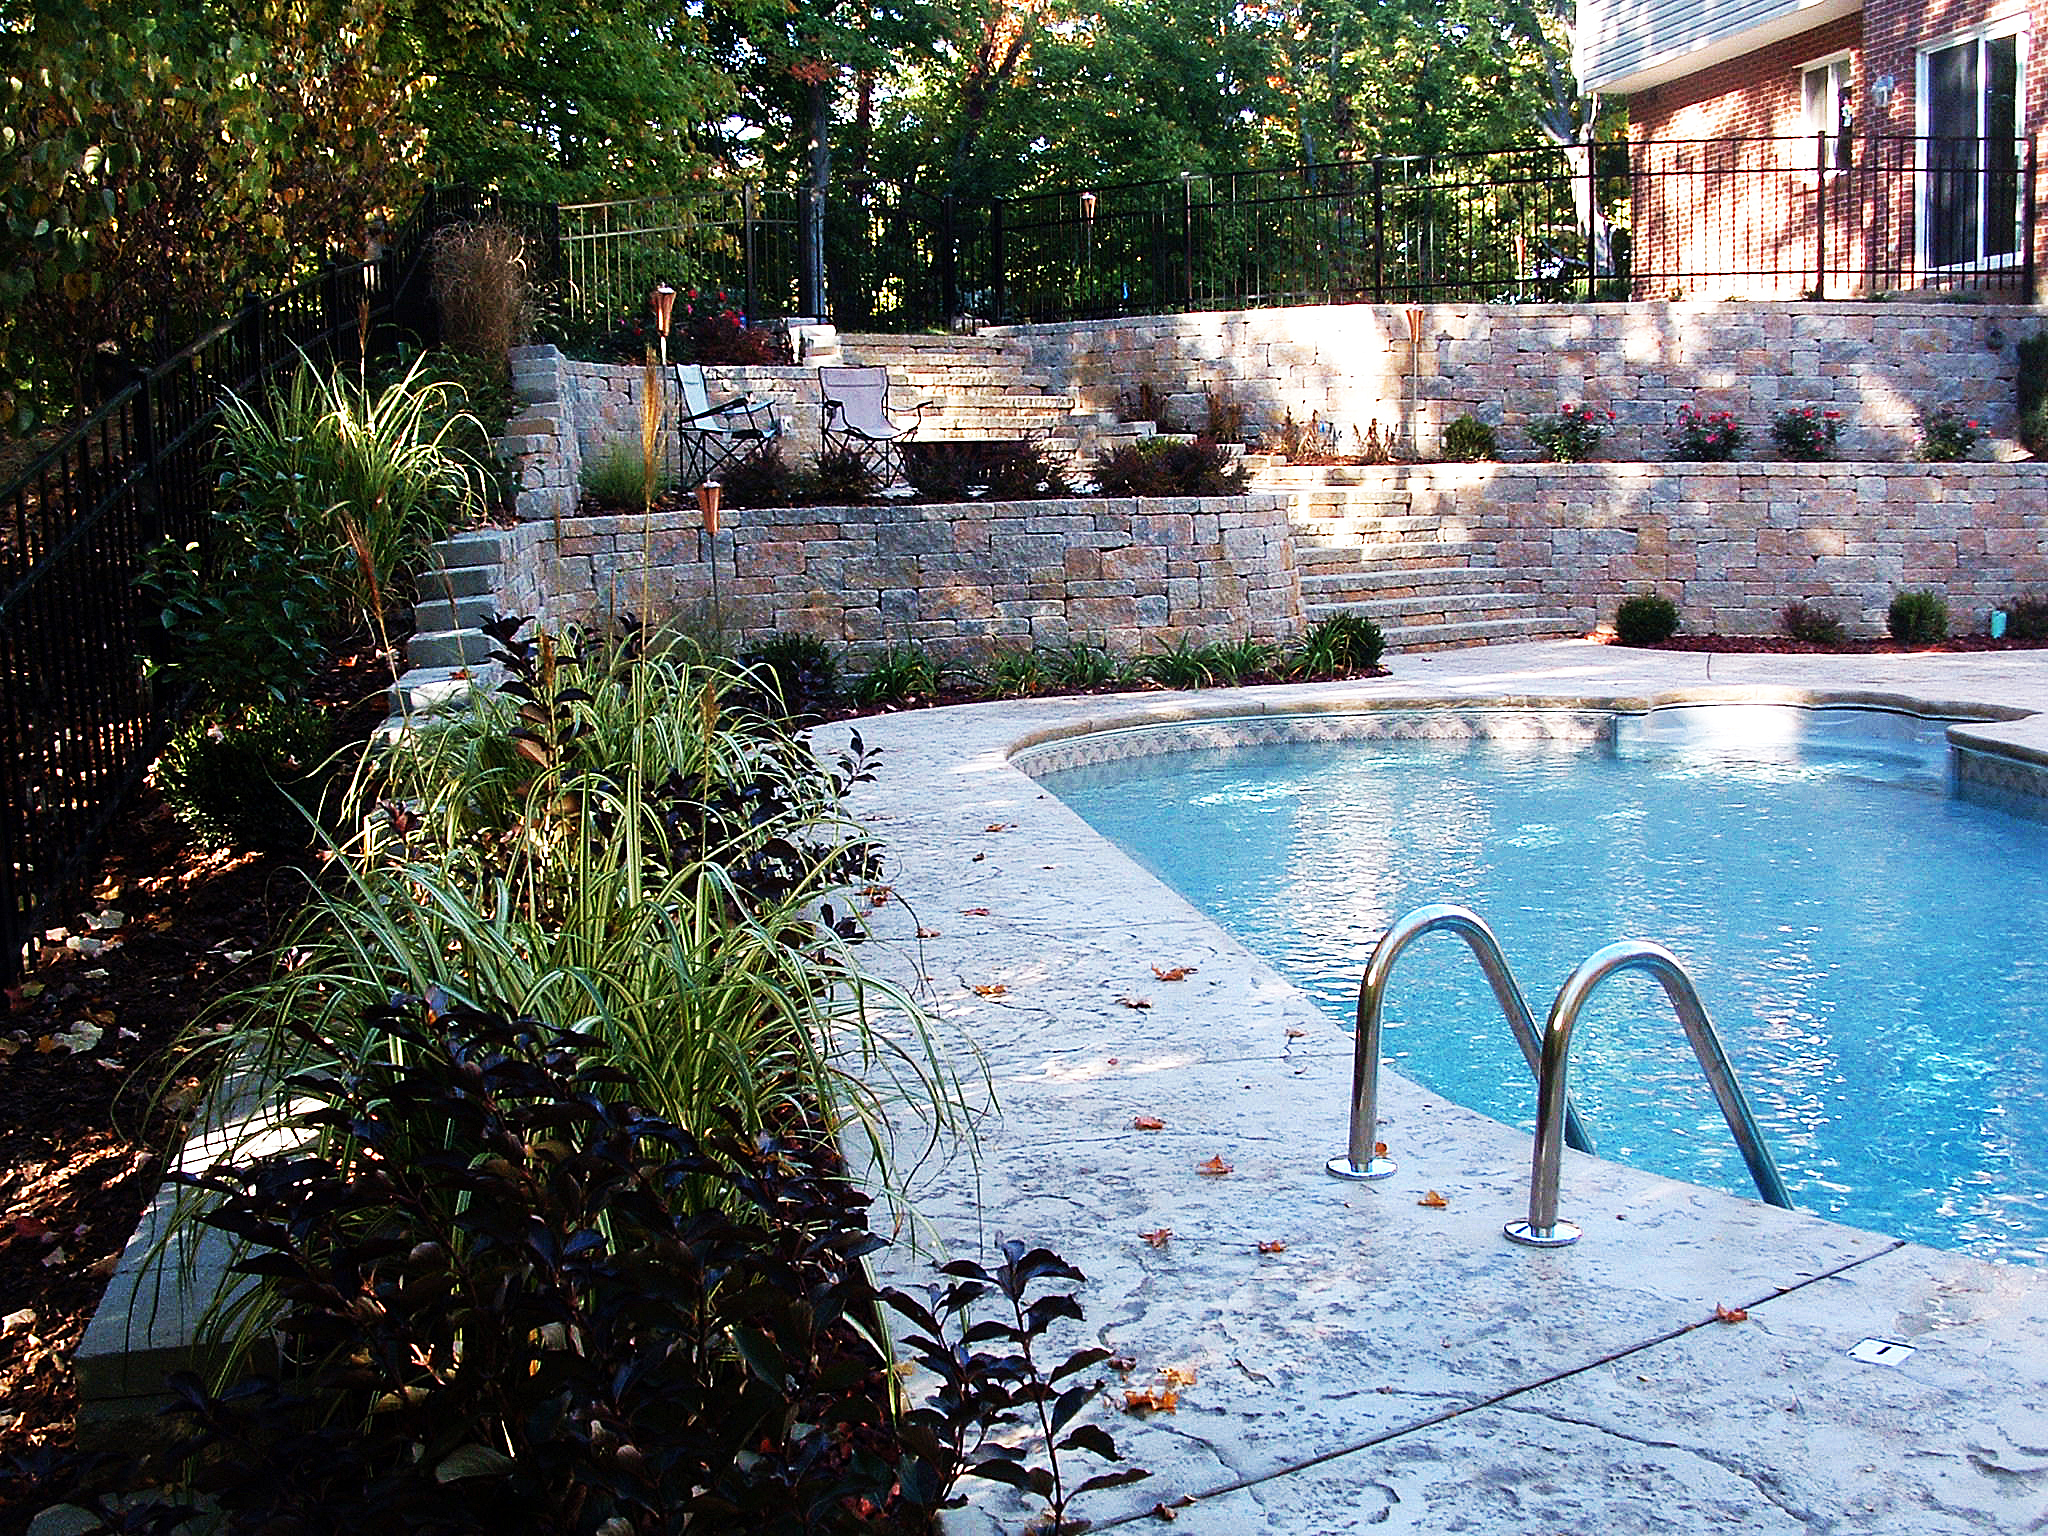 SunSpot Inground Pool Design - 110